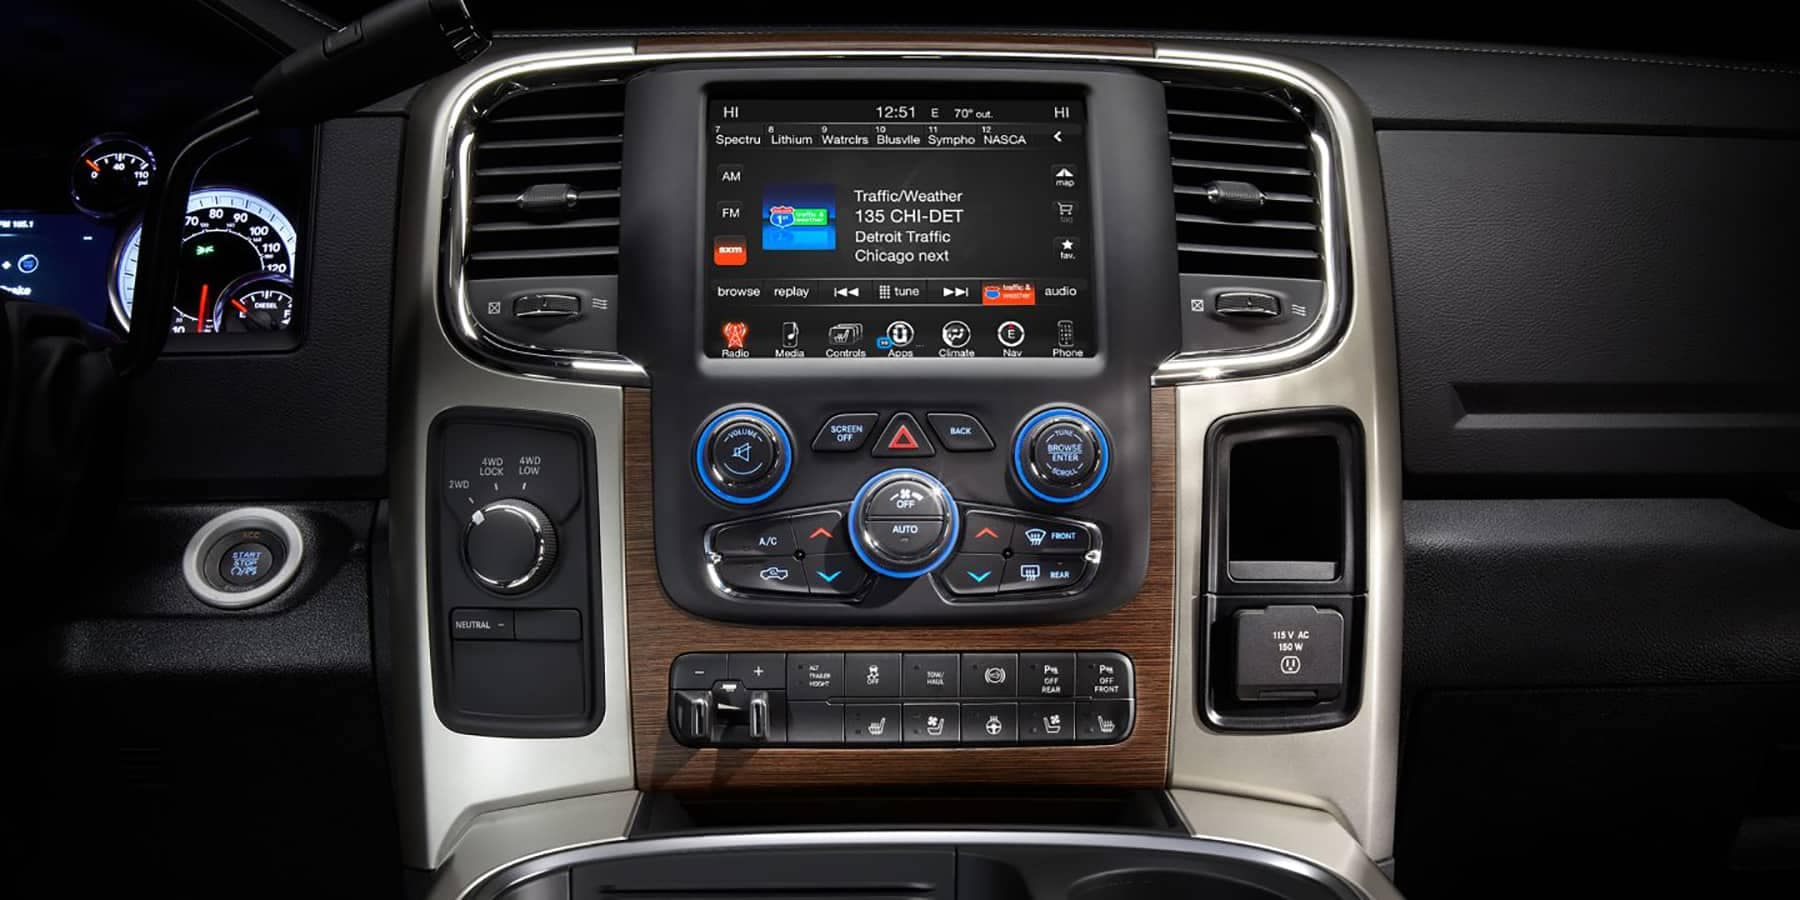 2017 Ram 3500 UConnect Console